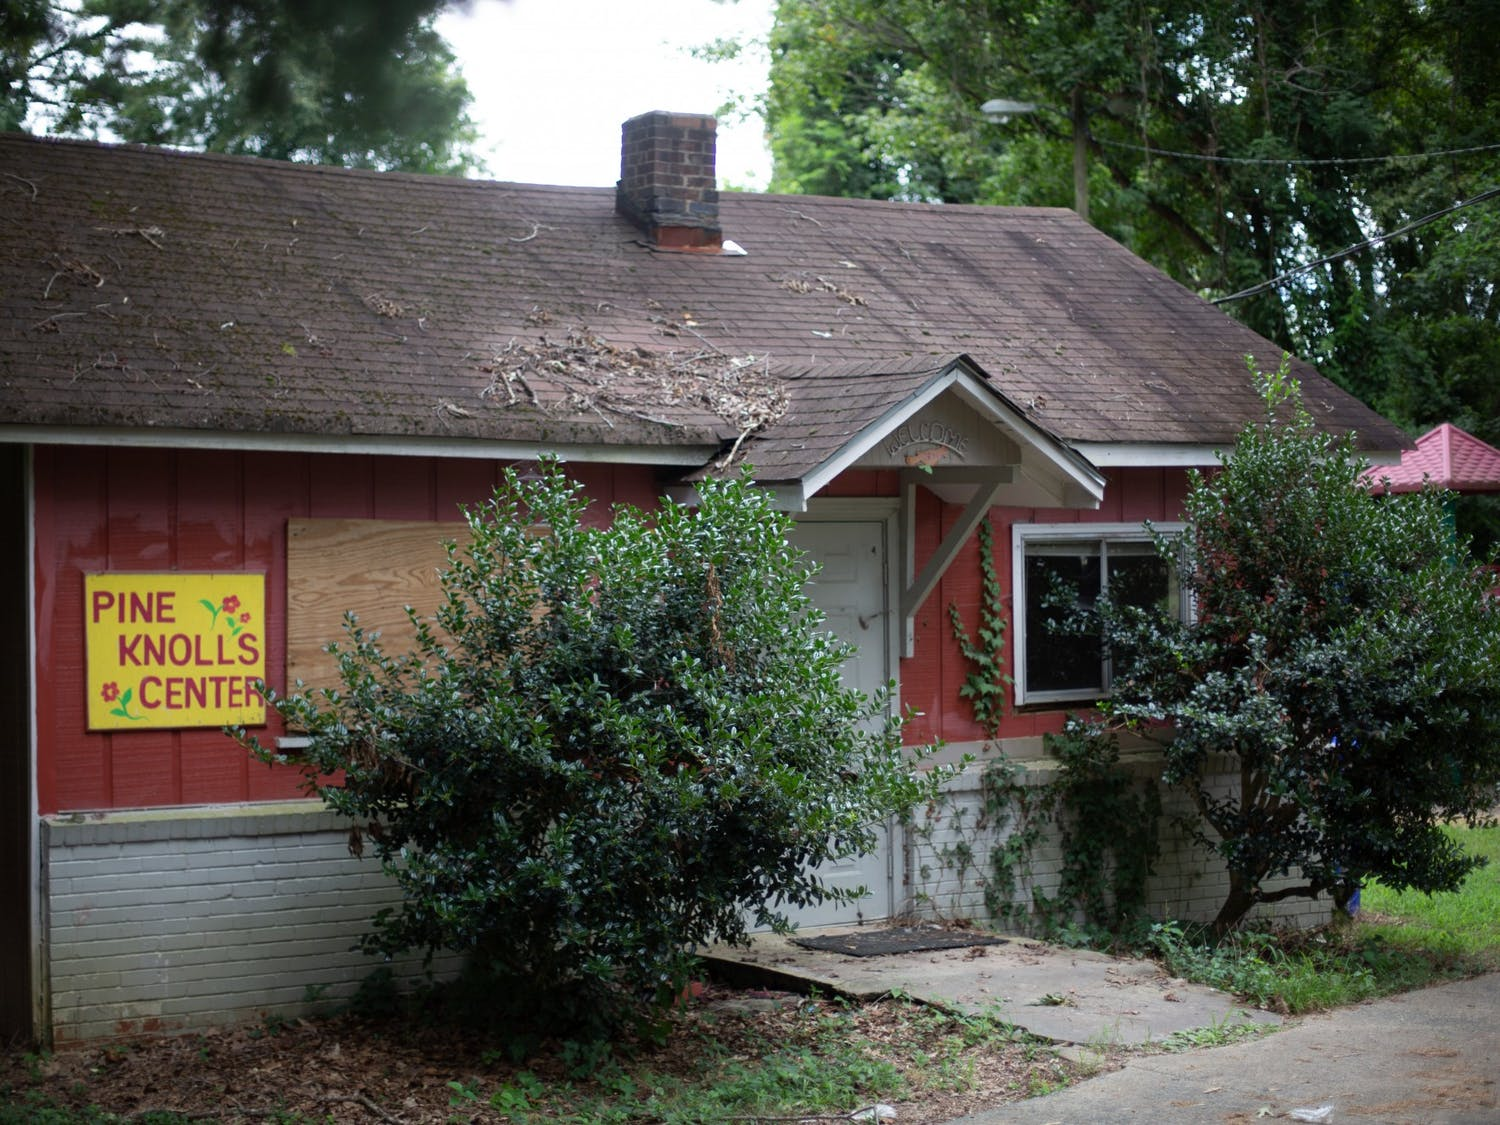 The Pine Knolls Community Center sits on Johnson St in Carrboro on Sunday, Aug. 30, 2020. Empowerment, Inc., a Chapel Hill-based organization, is looking to repurpose the Community Center and use the land for affordable housing.